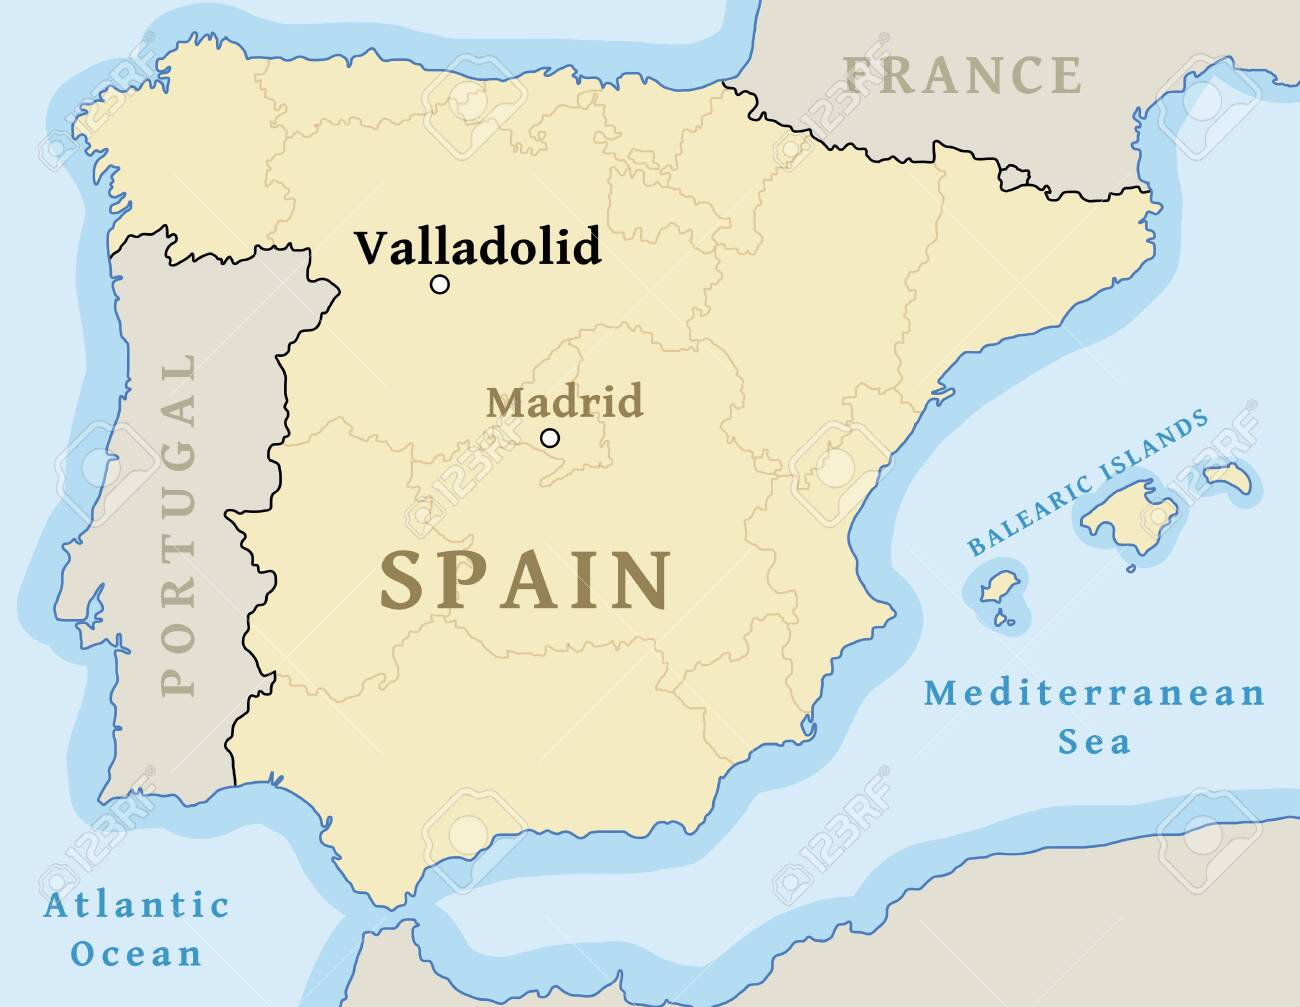 Map Of Spain Valladolid.Valladolid Map Location Locate City On Map Of Spain Vector